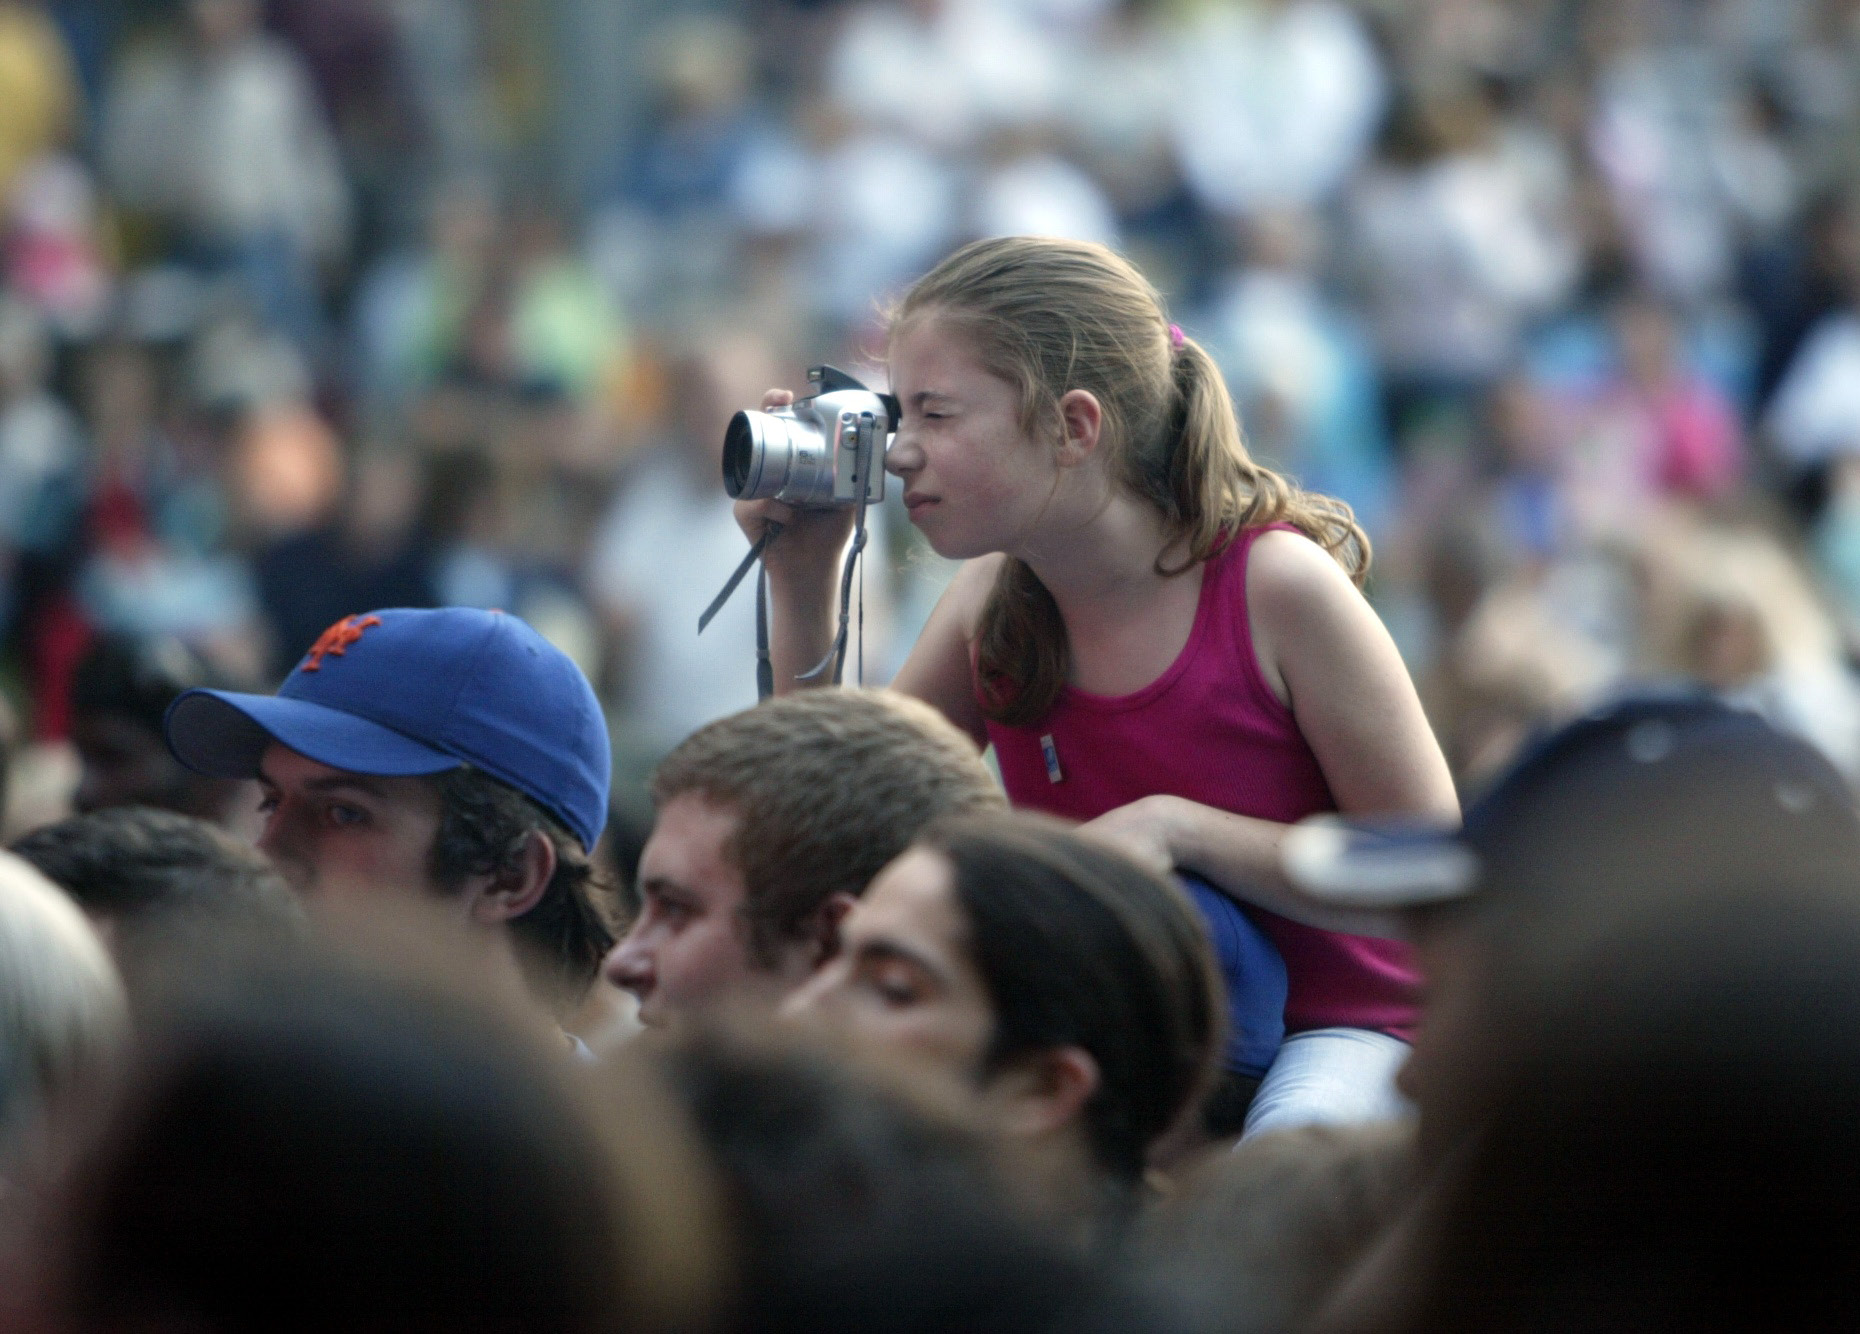 Jessica Deegan, then 10, sits on the shoulders of her father, Mike Deegan, to get above the crowd for a better picture of Chuck Berry as he performs at Hubbard Park on in June 2006.| File photo, Record-Journal